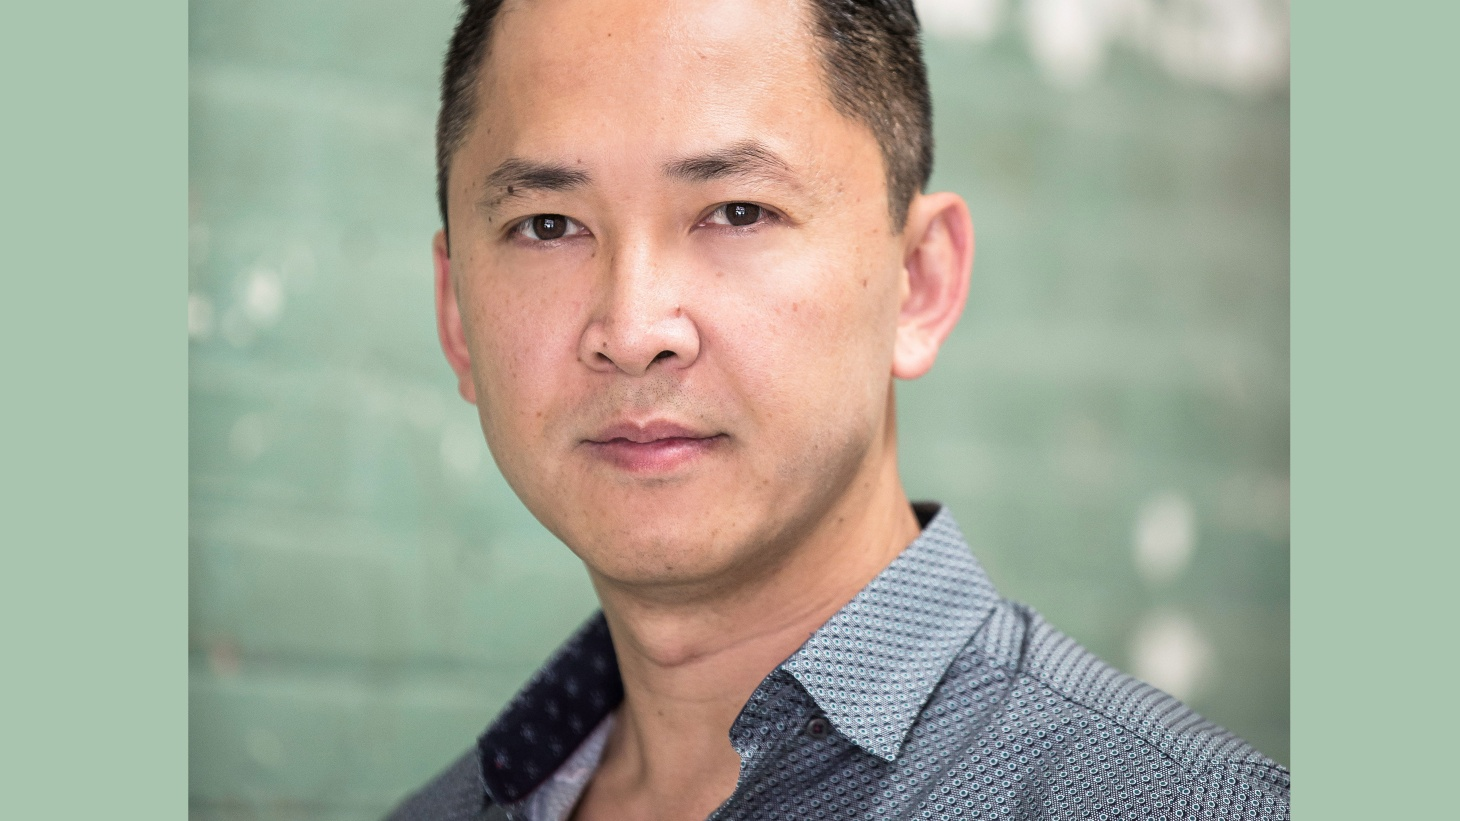 """Pulitzer Prize winner Viet Thanh Nguyen's new short story collection, """"The Refugees,"""" focuses on people living between two worlds — how they switch identities and navigate issues of love, family and immigration. Nguyen talks about his personal sense of being a refugee, and points out the important difference between an immigrant and a refugee."""